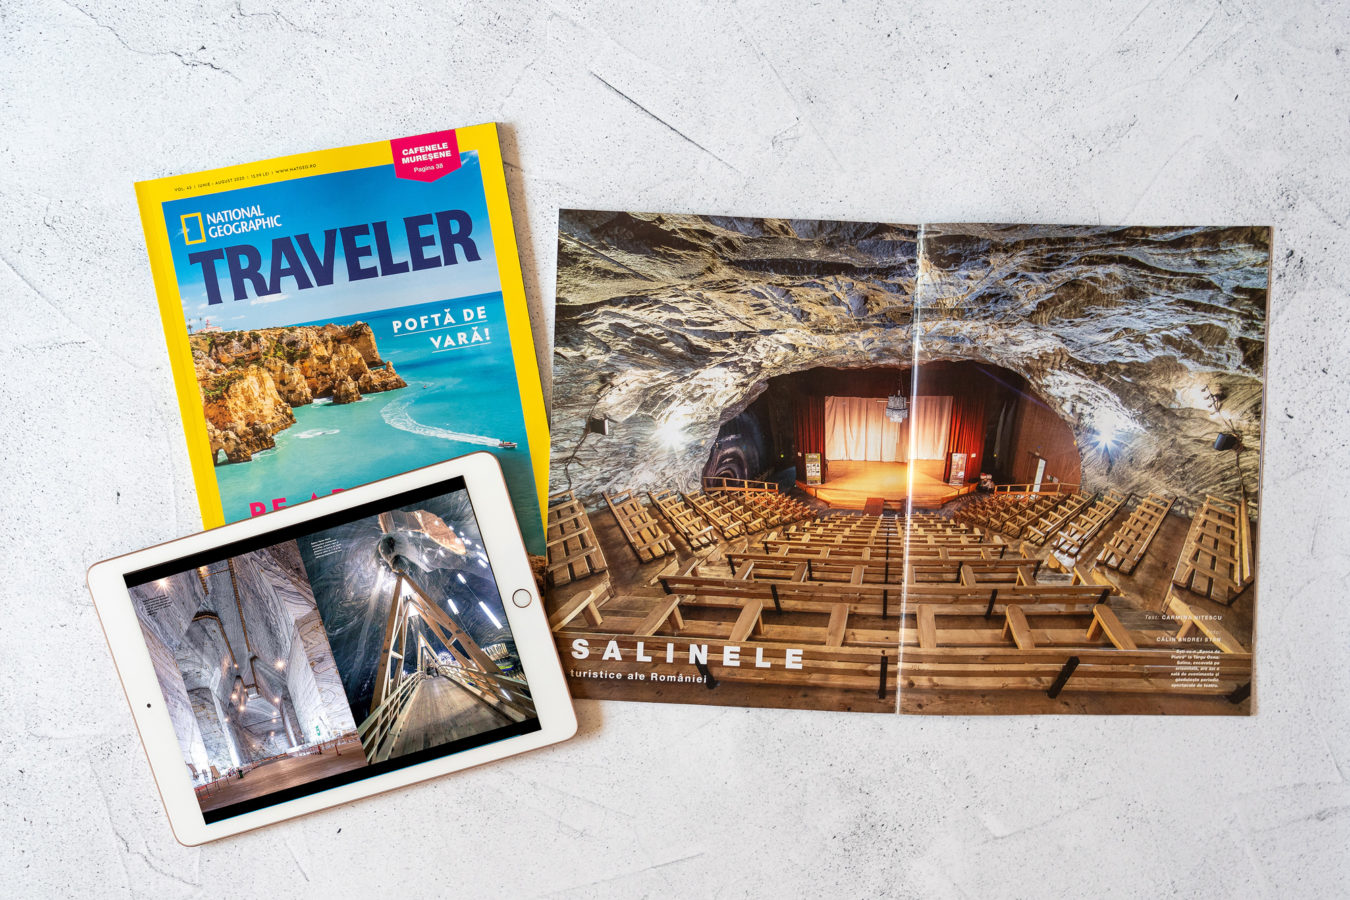 National Geographic Traveler, vara 2020